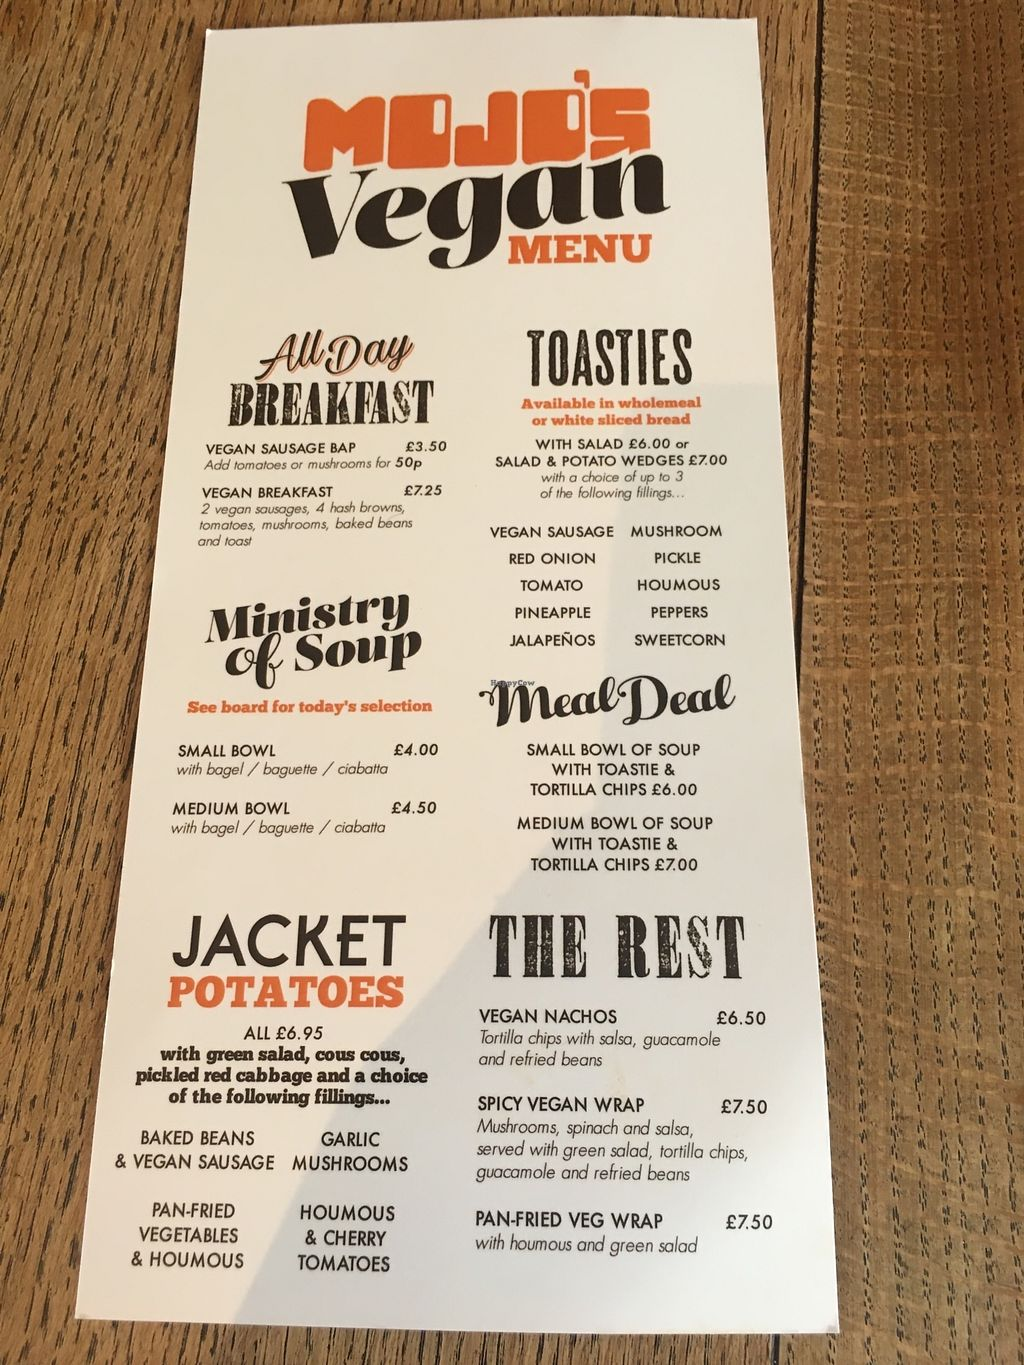 """Photo of Mojo's Music Cafe  by <a href=""""/members/profile/RealGandy"""">RealGandy</a> <br/>Vegan menu side 2 <br/> April 3, 2018  - <a href='/contact/abuse/image/116625/380181'>Report</a>"""